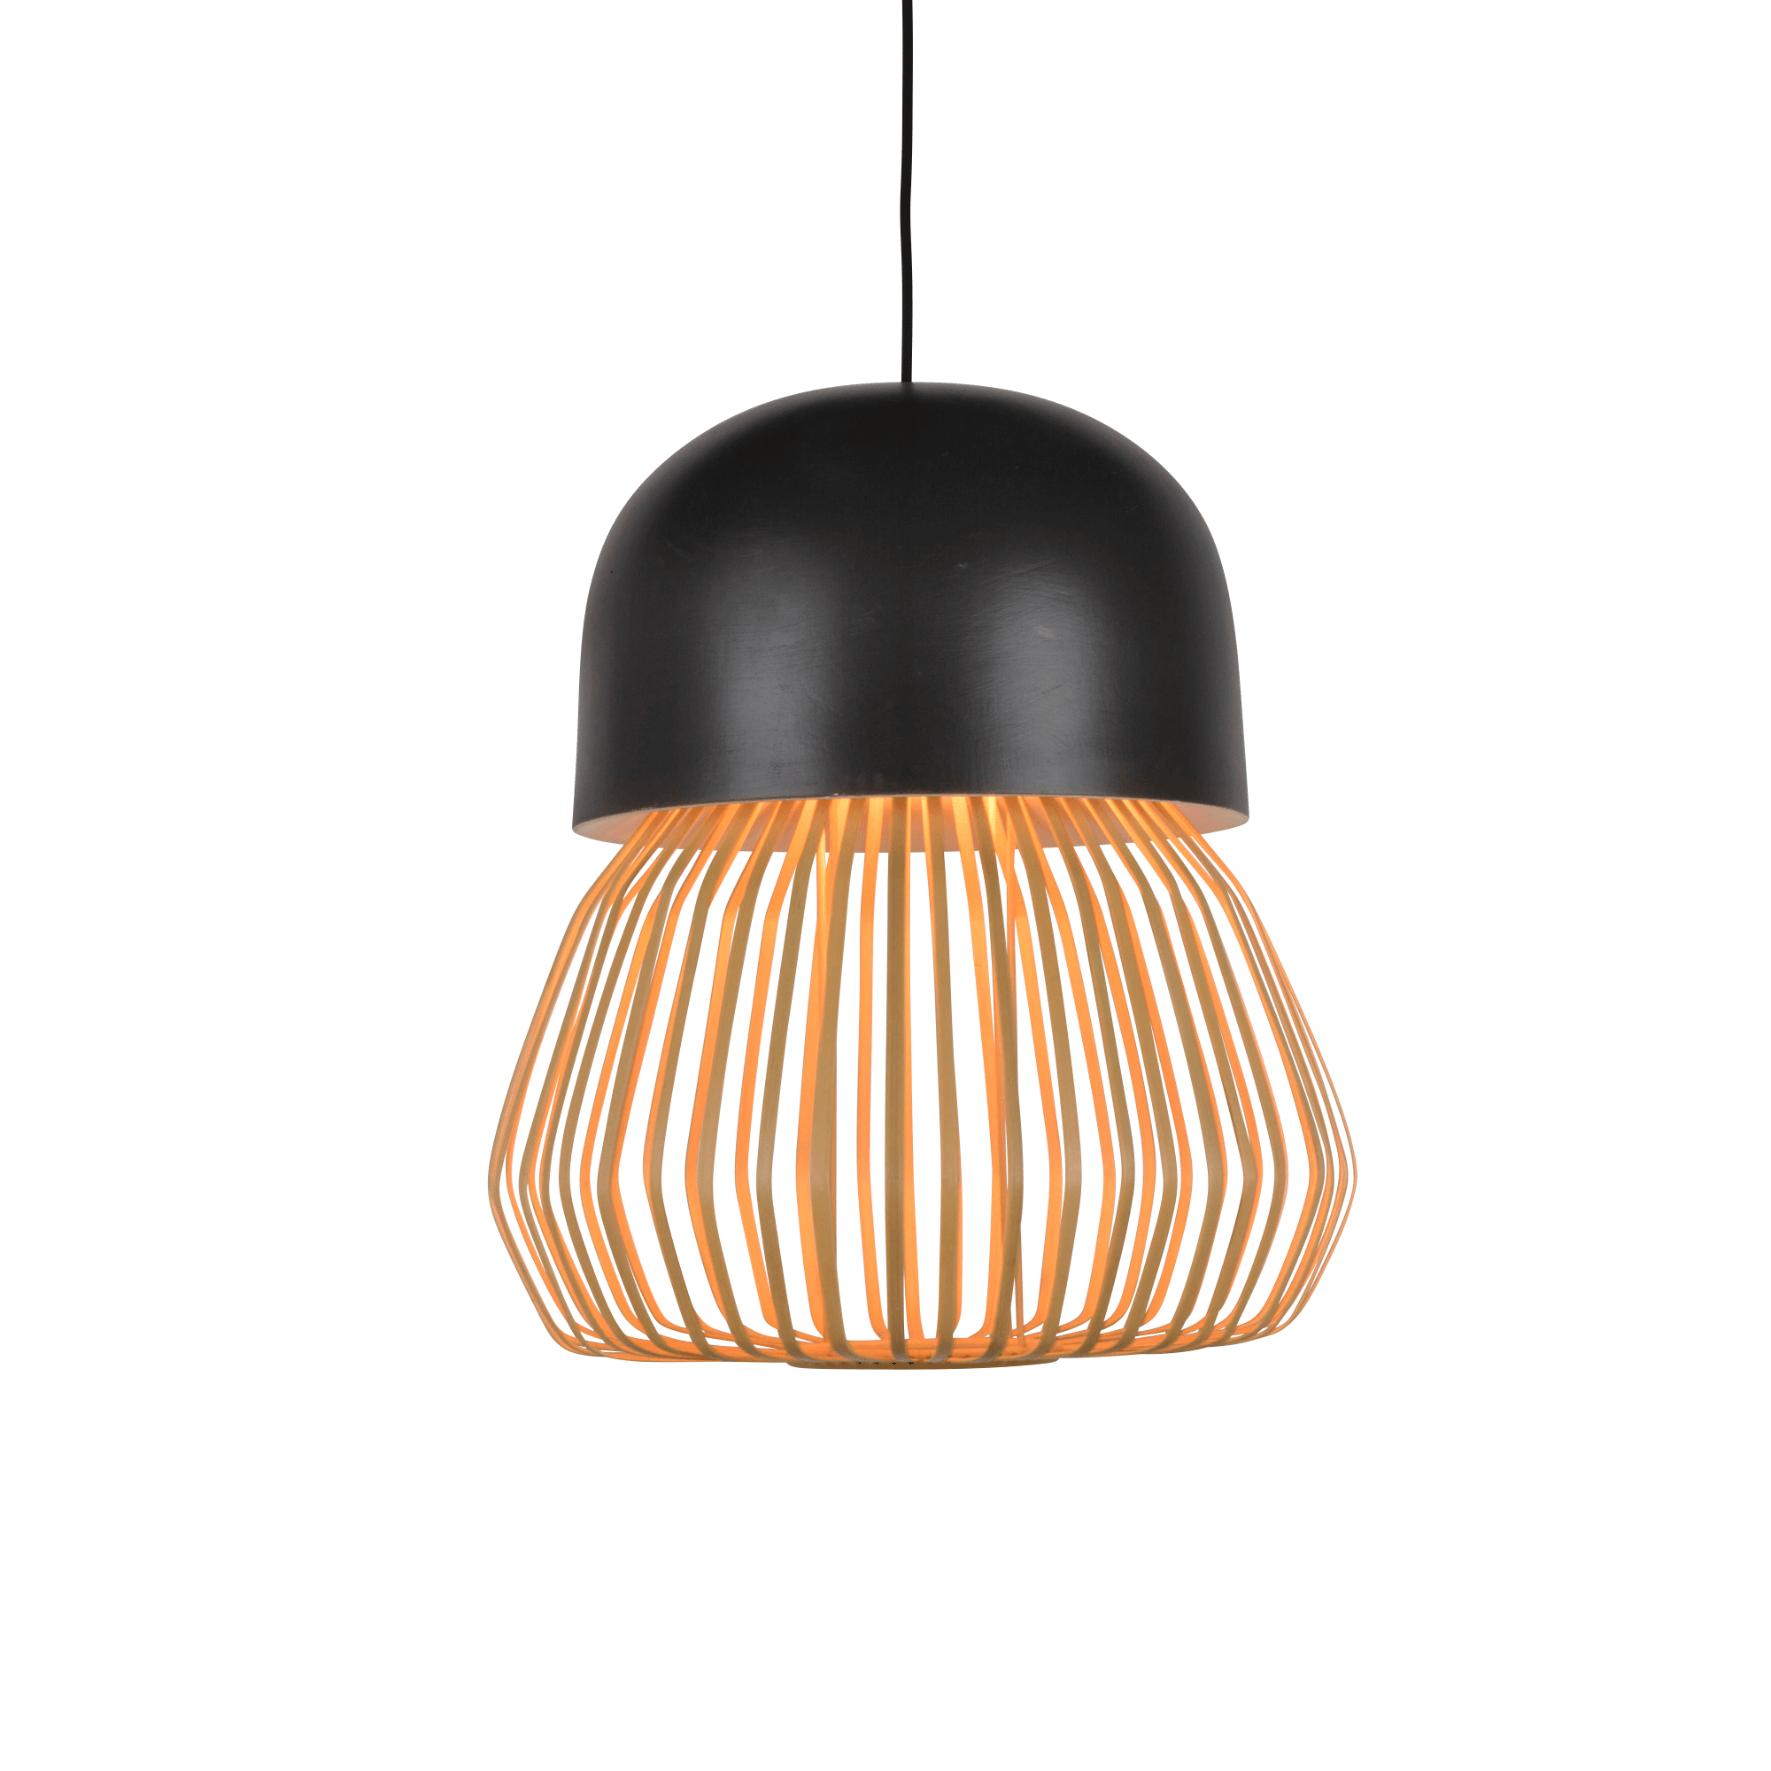 Suspension Anemos M - Maison Forestier